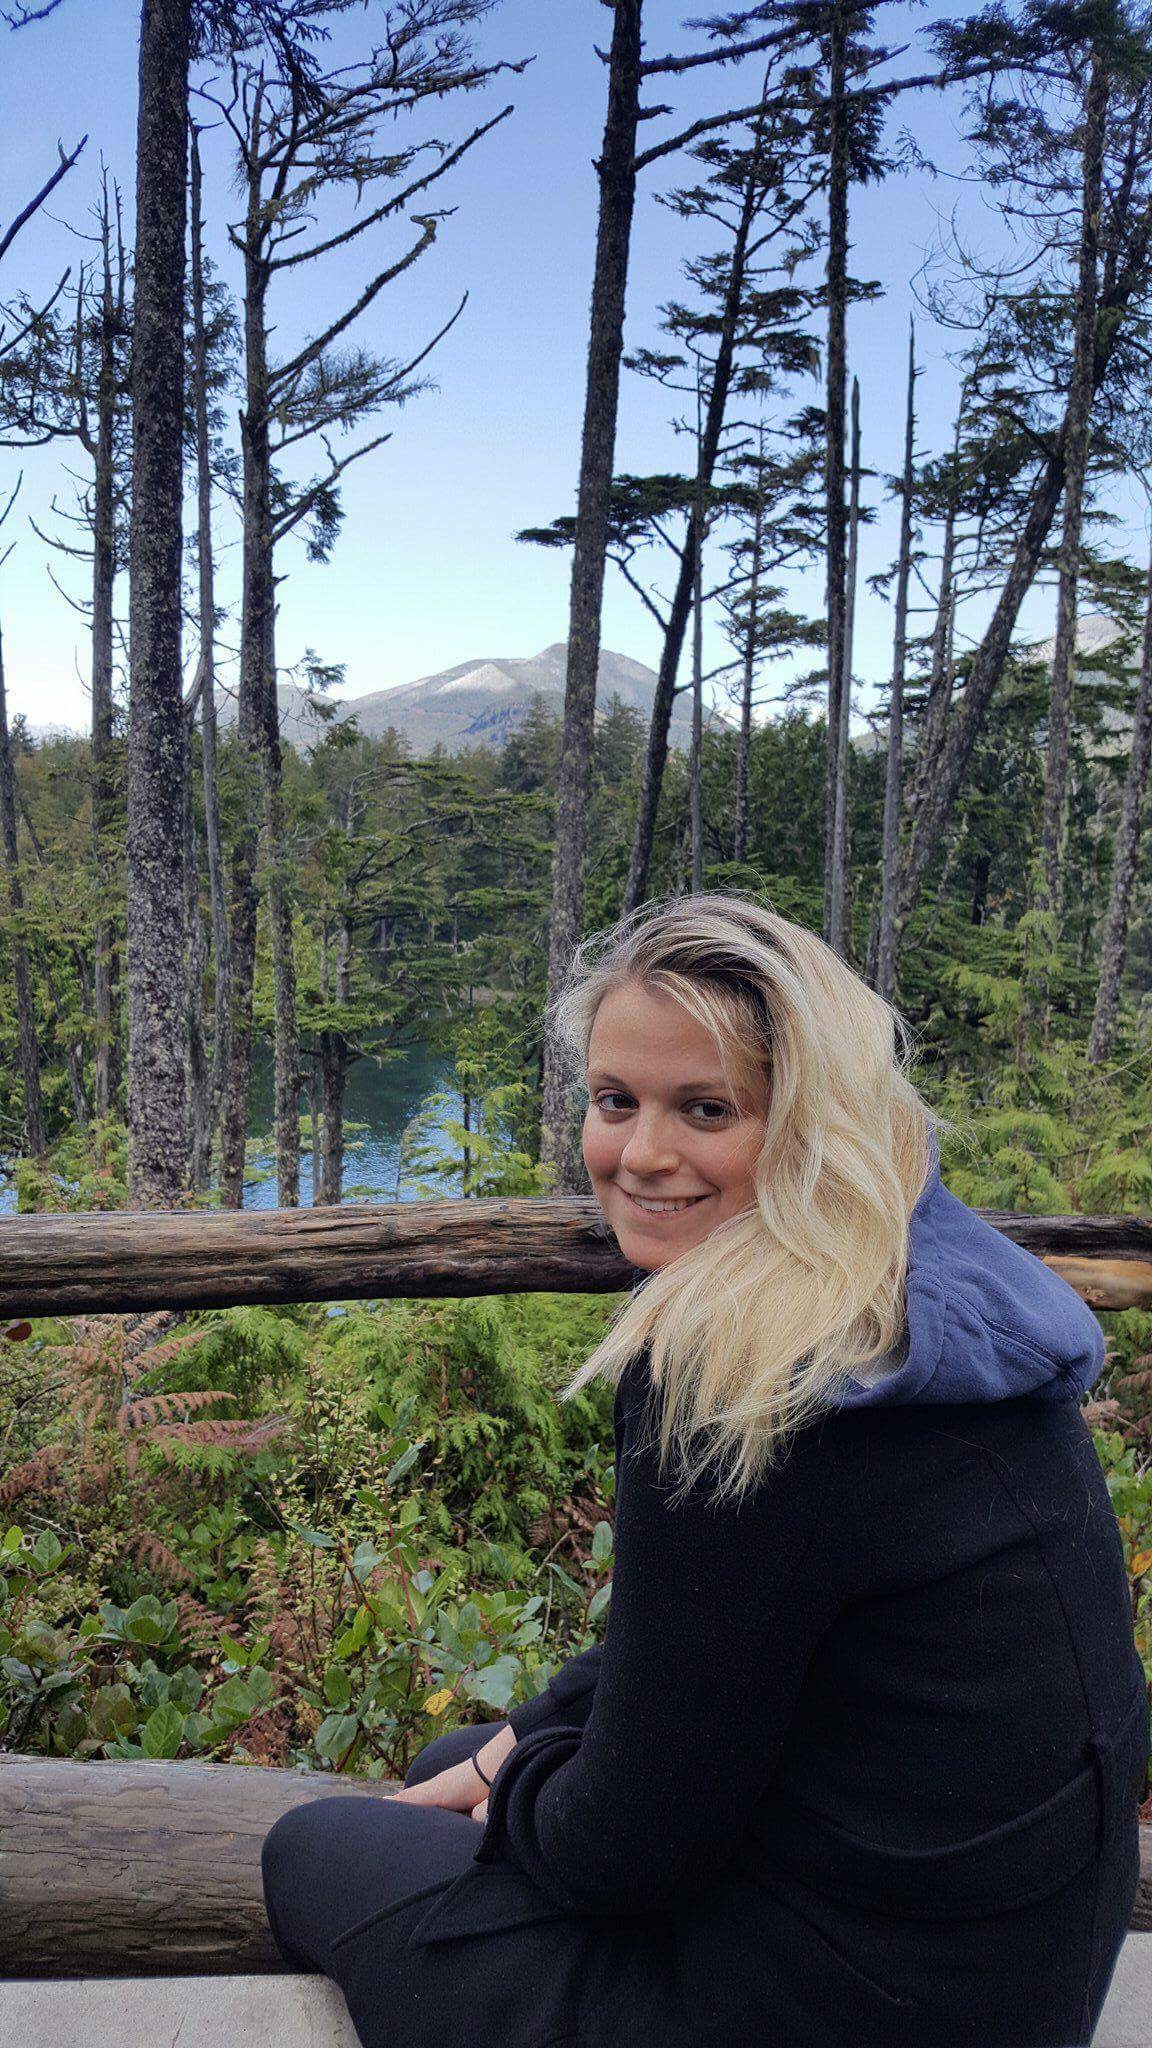 Laura on the Wild Pacific Trail